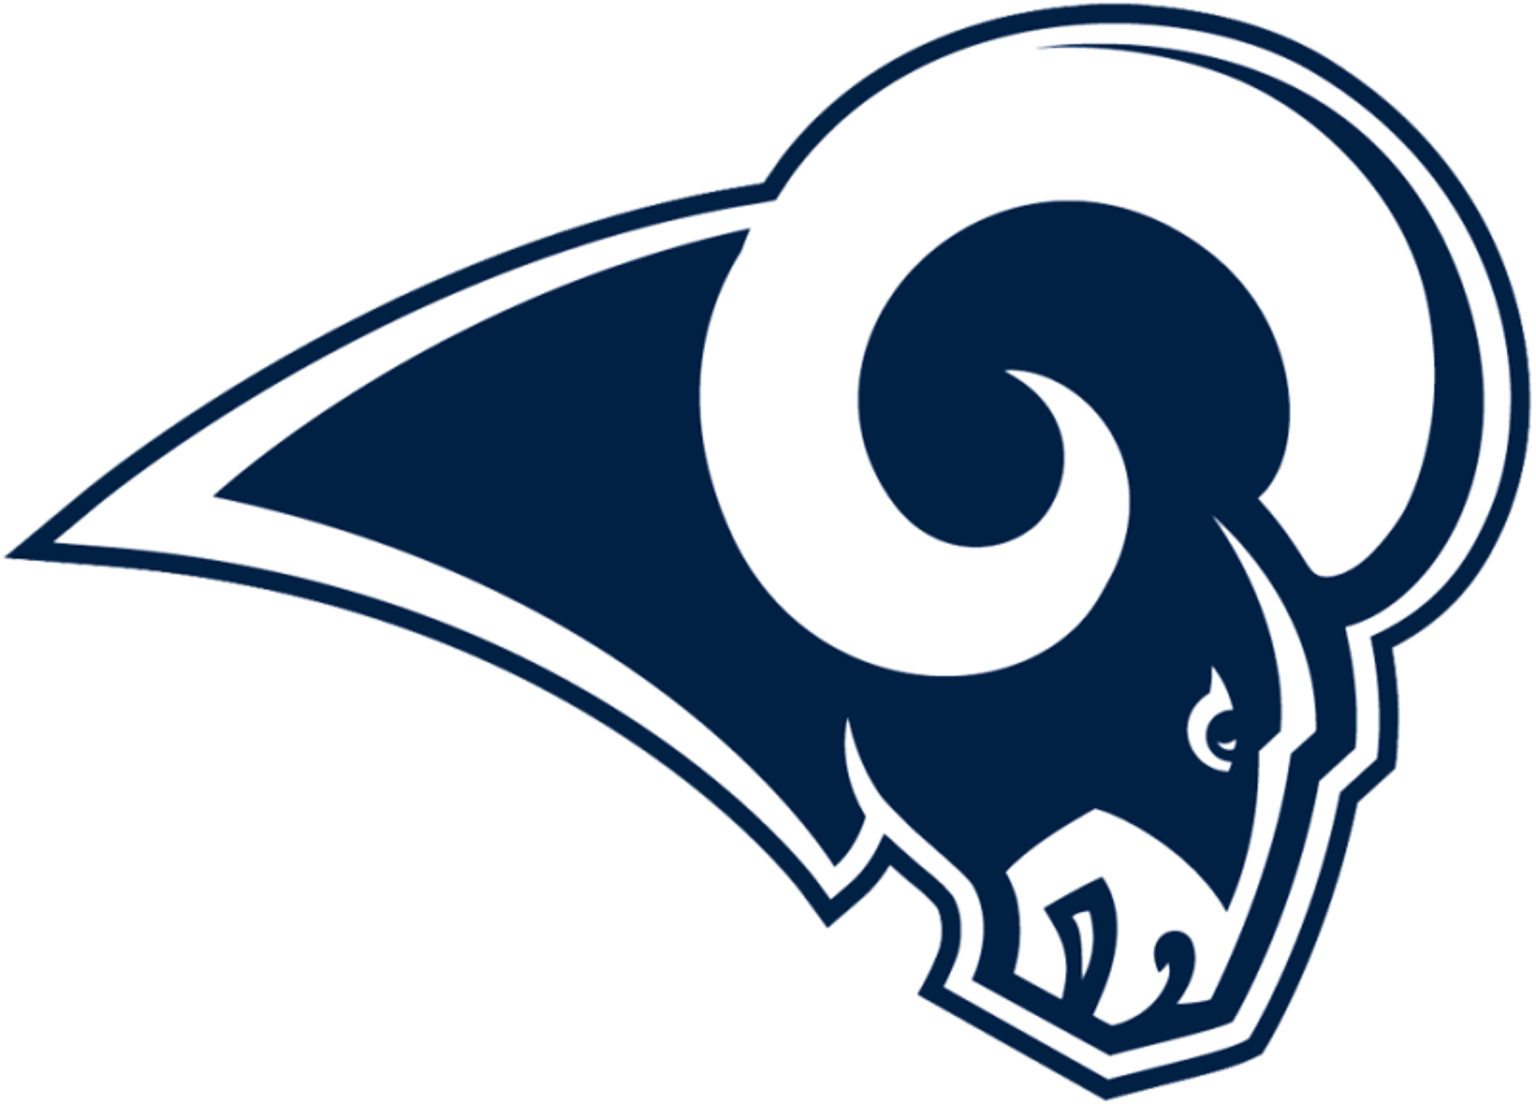 The Worst Logo Changes In Nfl History Ranked From 32 To 1 Rams Being No 1 In 2020 Los Angeles Rams Logo Nfl Logo Nfl History